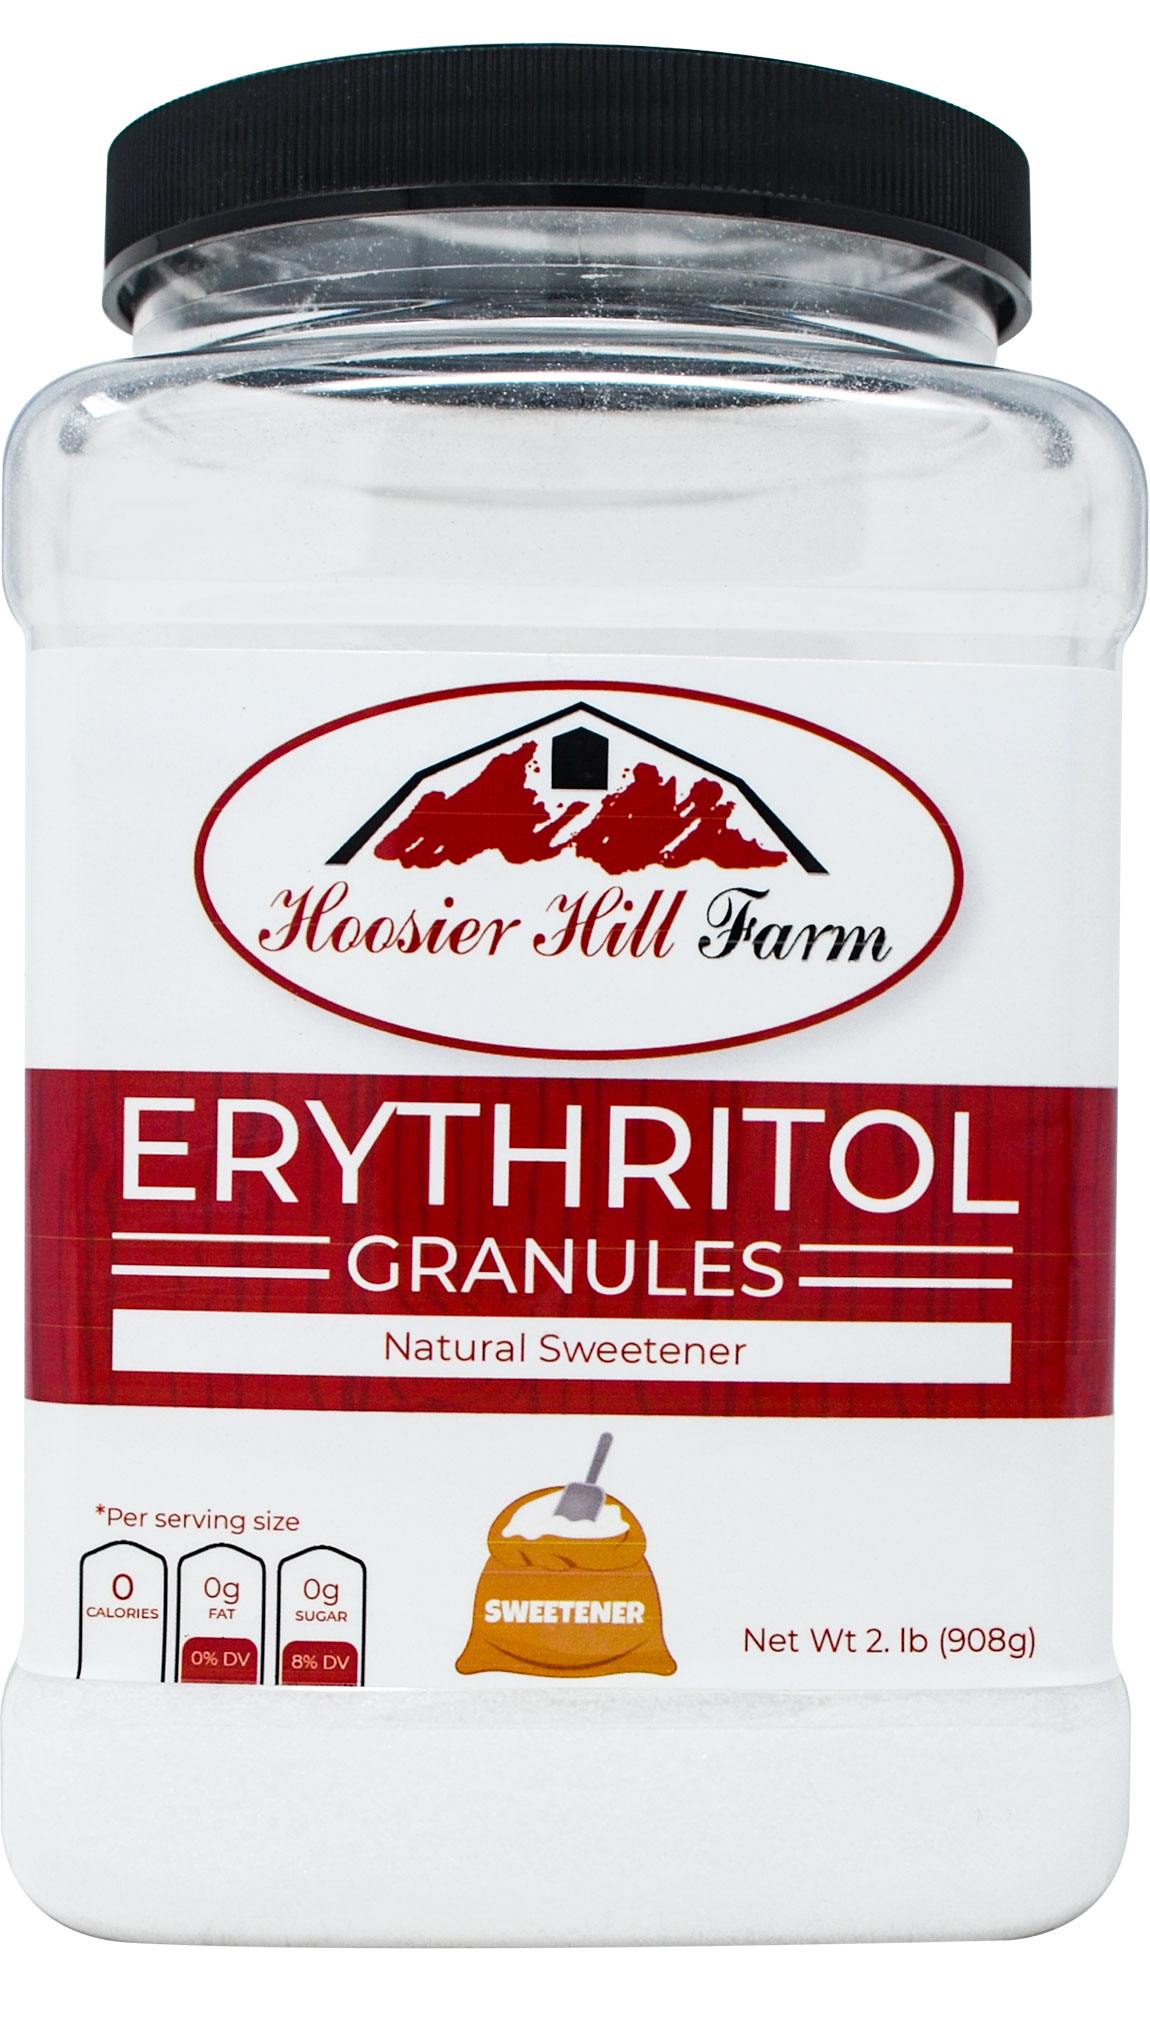 Hoosier Hill Farm Erythritol Granules 2 lb. Jar